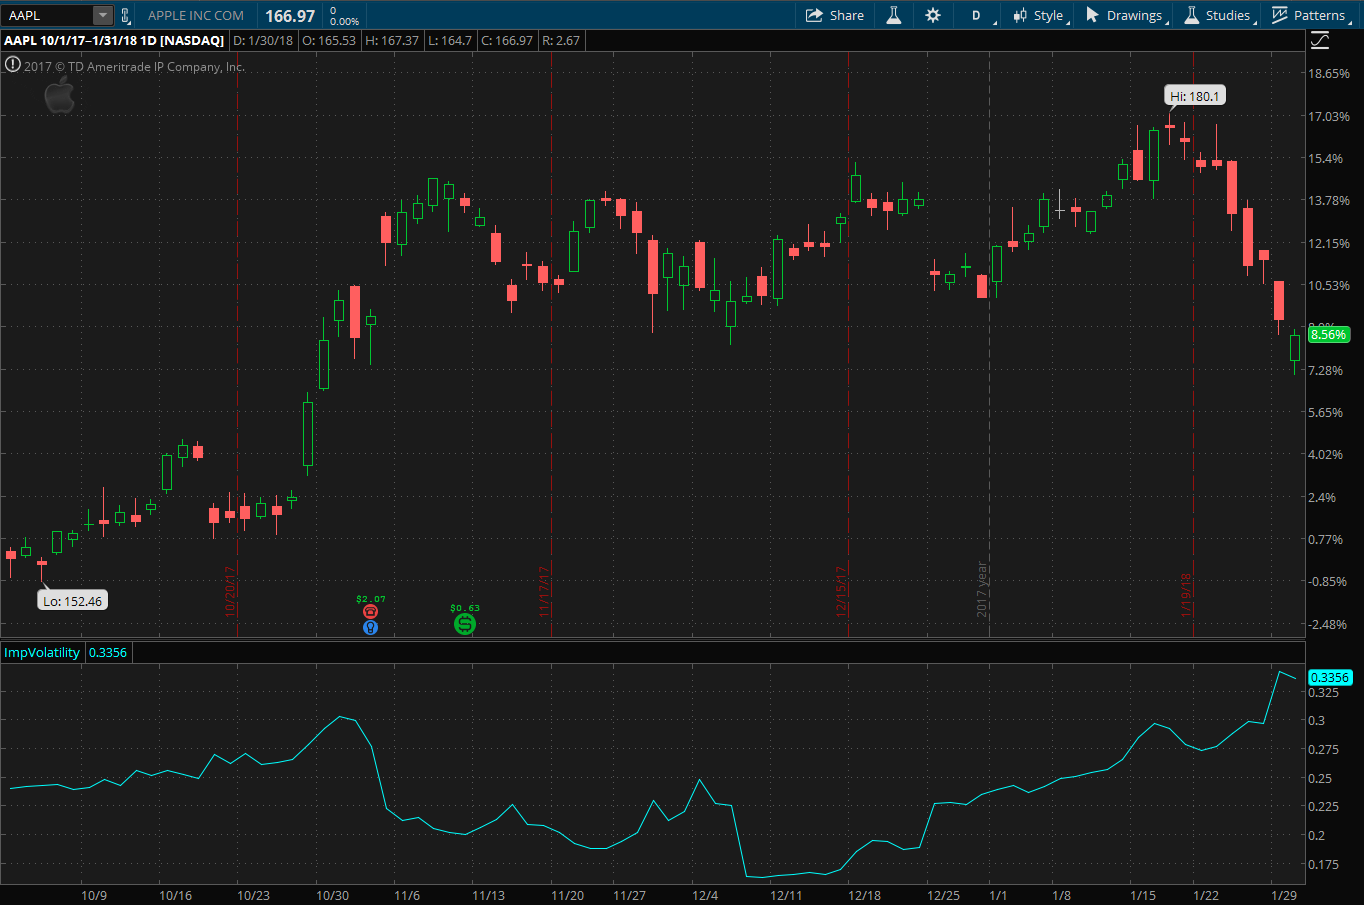 Apple Inc. stock chart since the start of Q1 fiscal 201 with bottom chart showing implied volatility